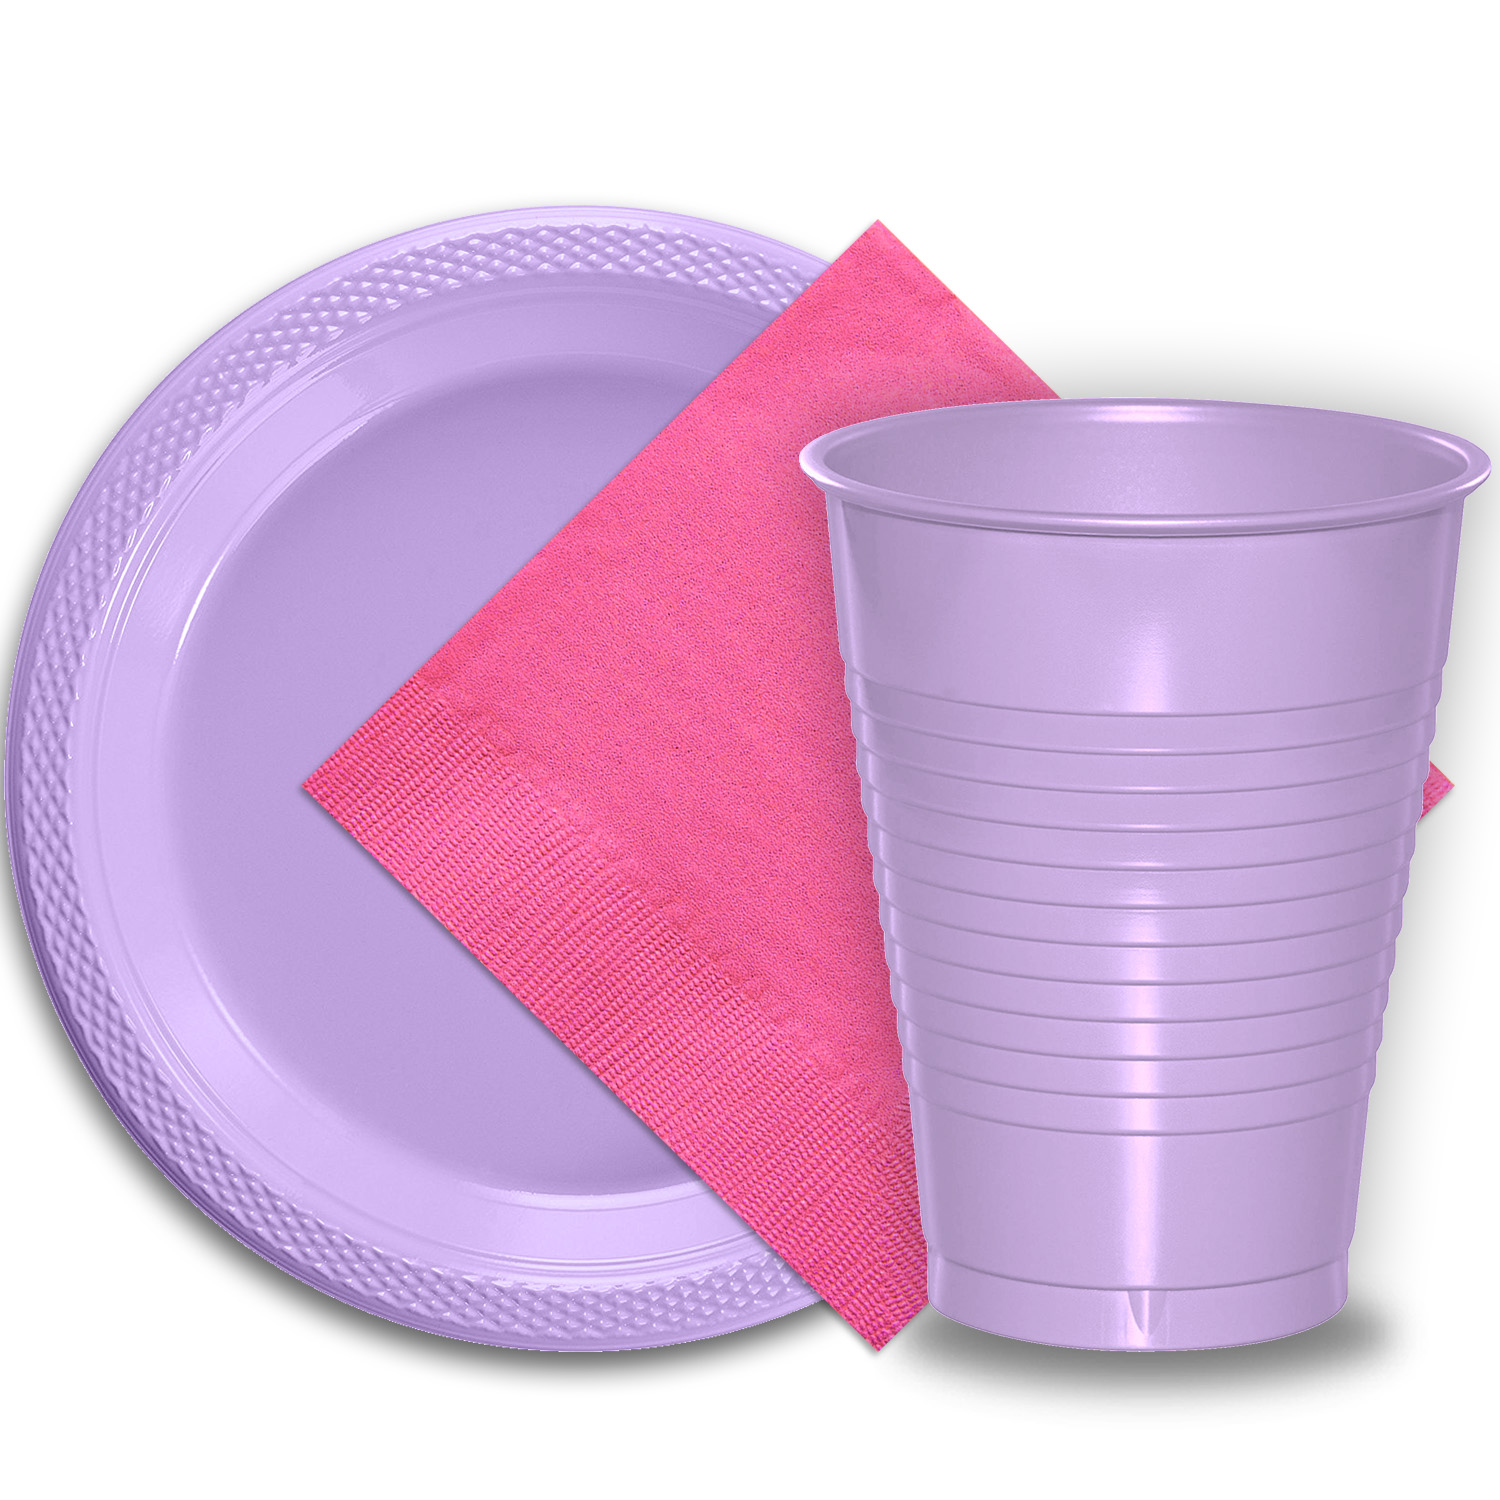 """50 Lavender Plastic Plates (9""""), 50 Lavender Plastic Cups (12 oz.), and 50 Hot Pink Paper Napkins, Dazzelling Colored Disposable Party Supplies Tableware Set for Fifty Guests."""